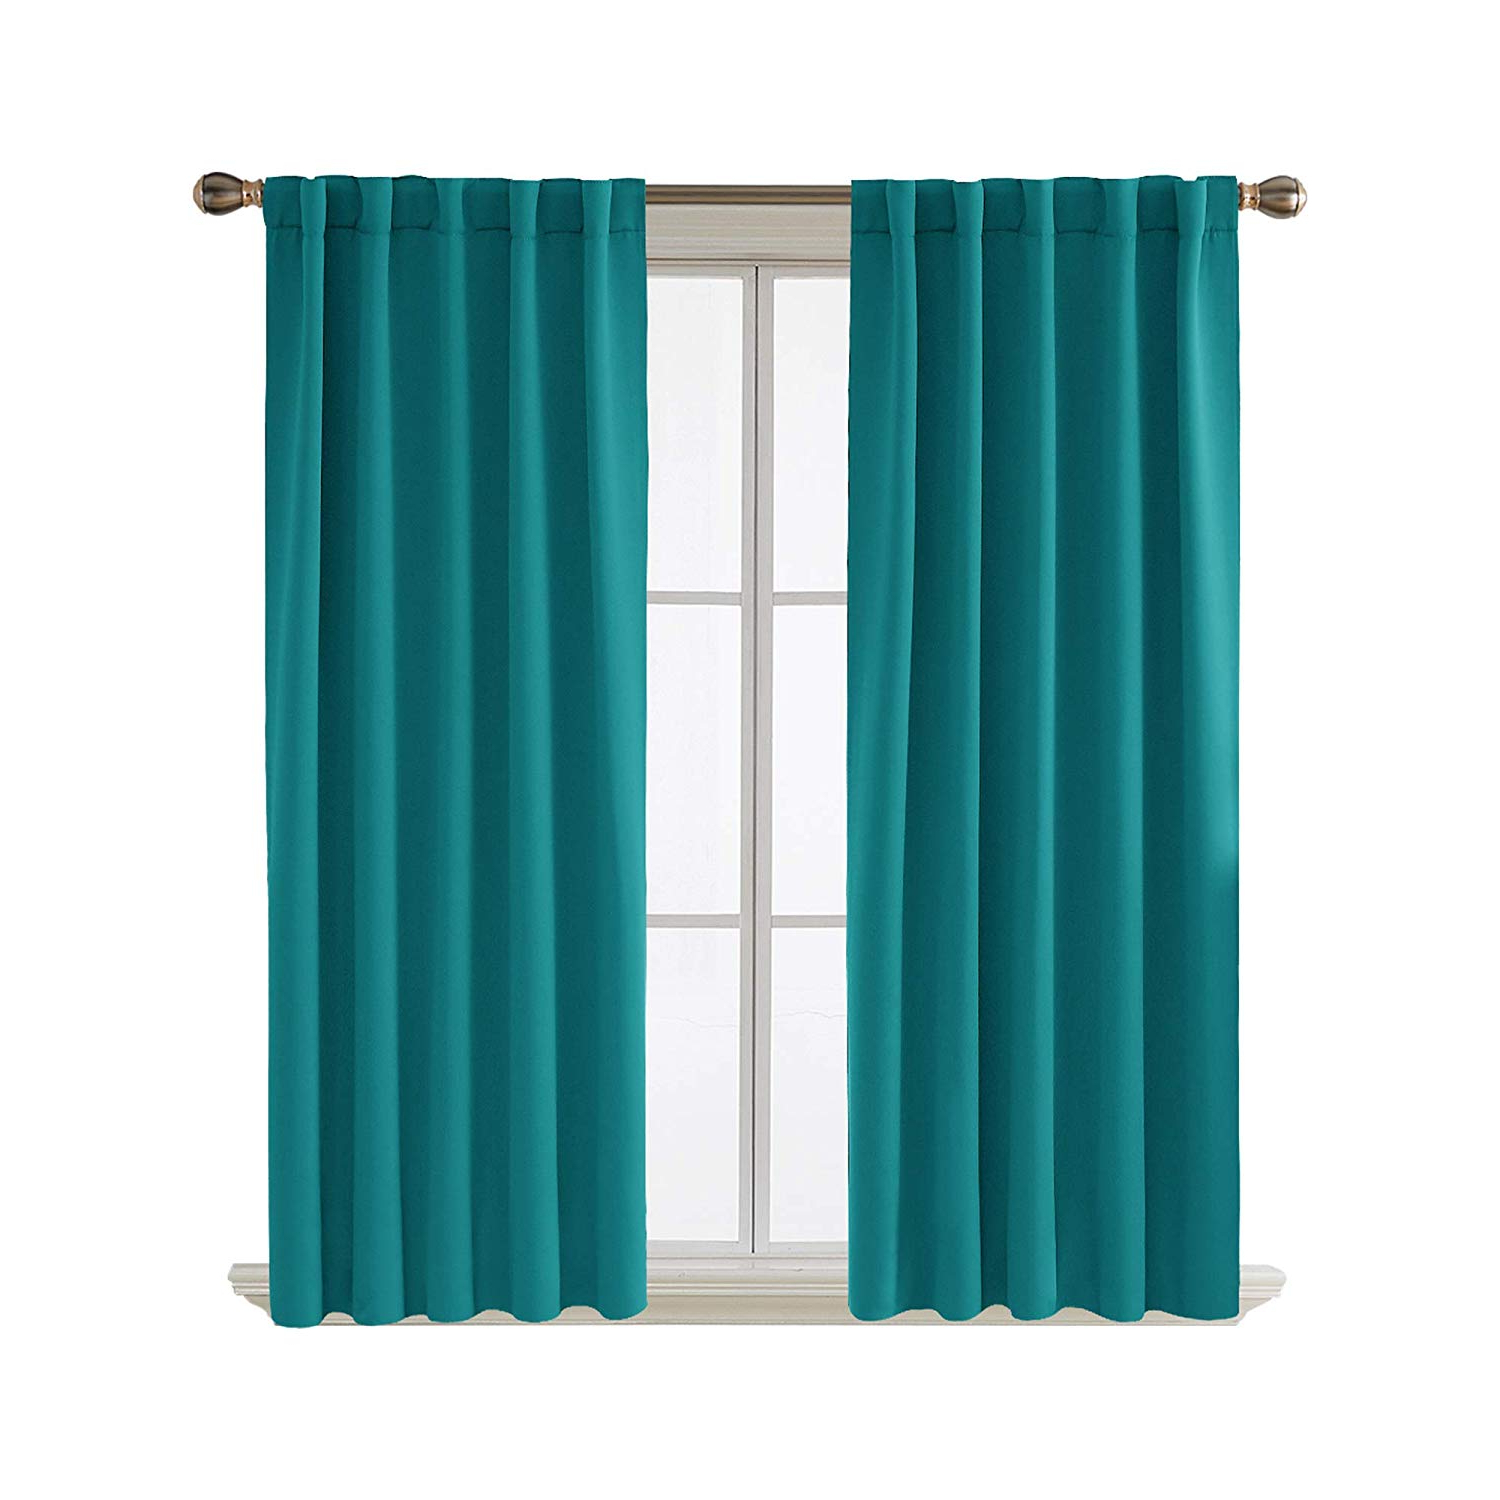 Widely Used Deconovo Short Blackout Curtains For Kitchen Windows Rod Pocket And Back  Tab Curtains 42X45 Inch Turquoise 2 Panels In Ultimate Blackout Short Length Grommet Panels (View 20 of 20)